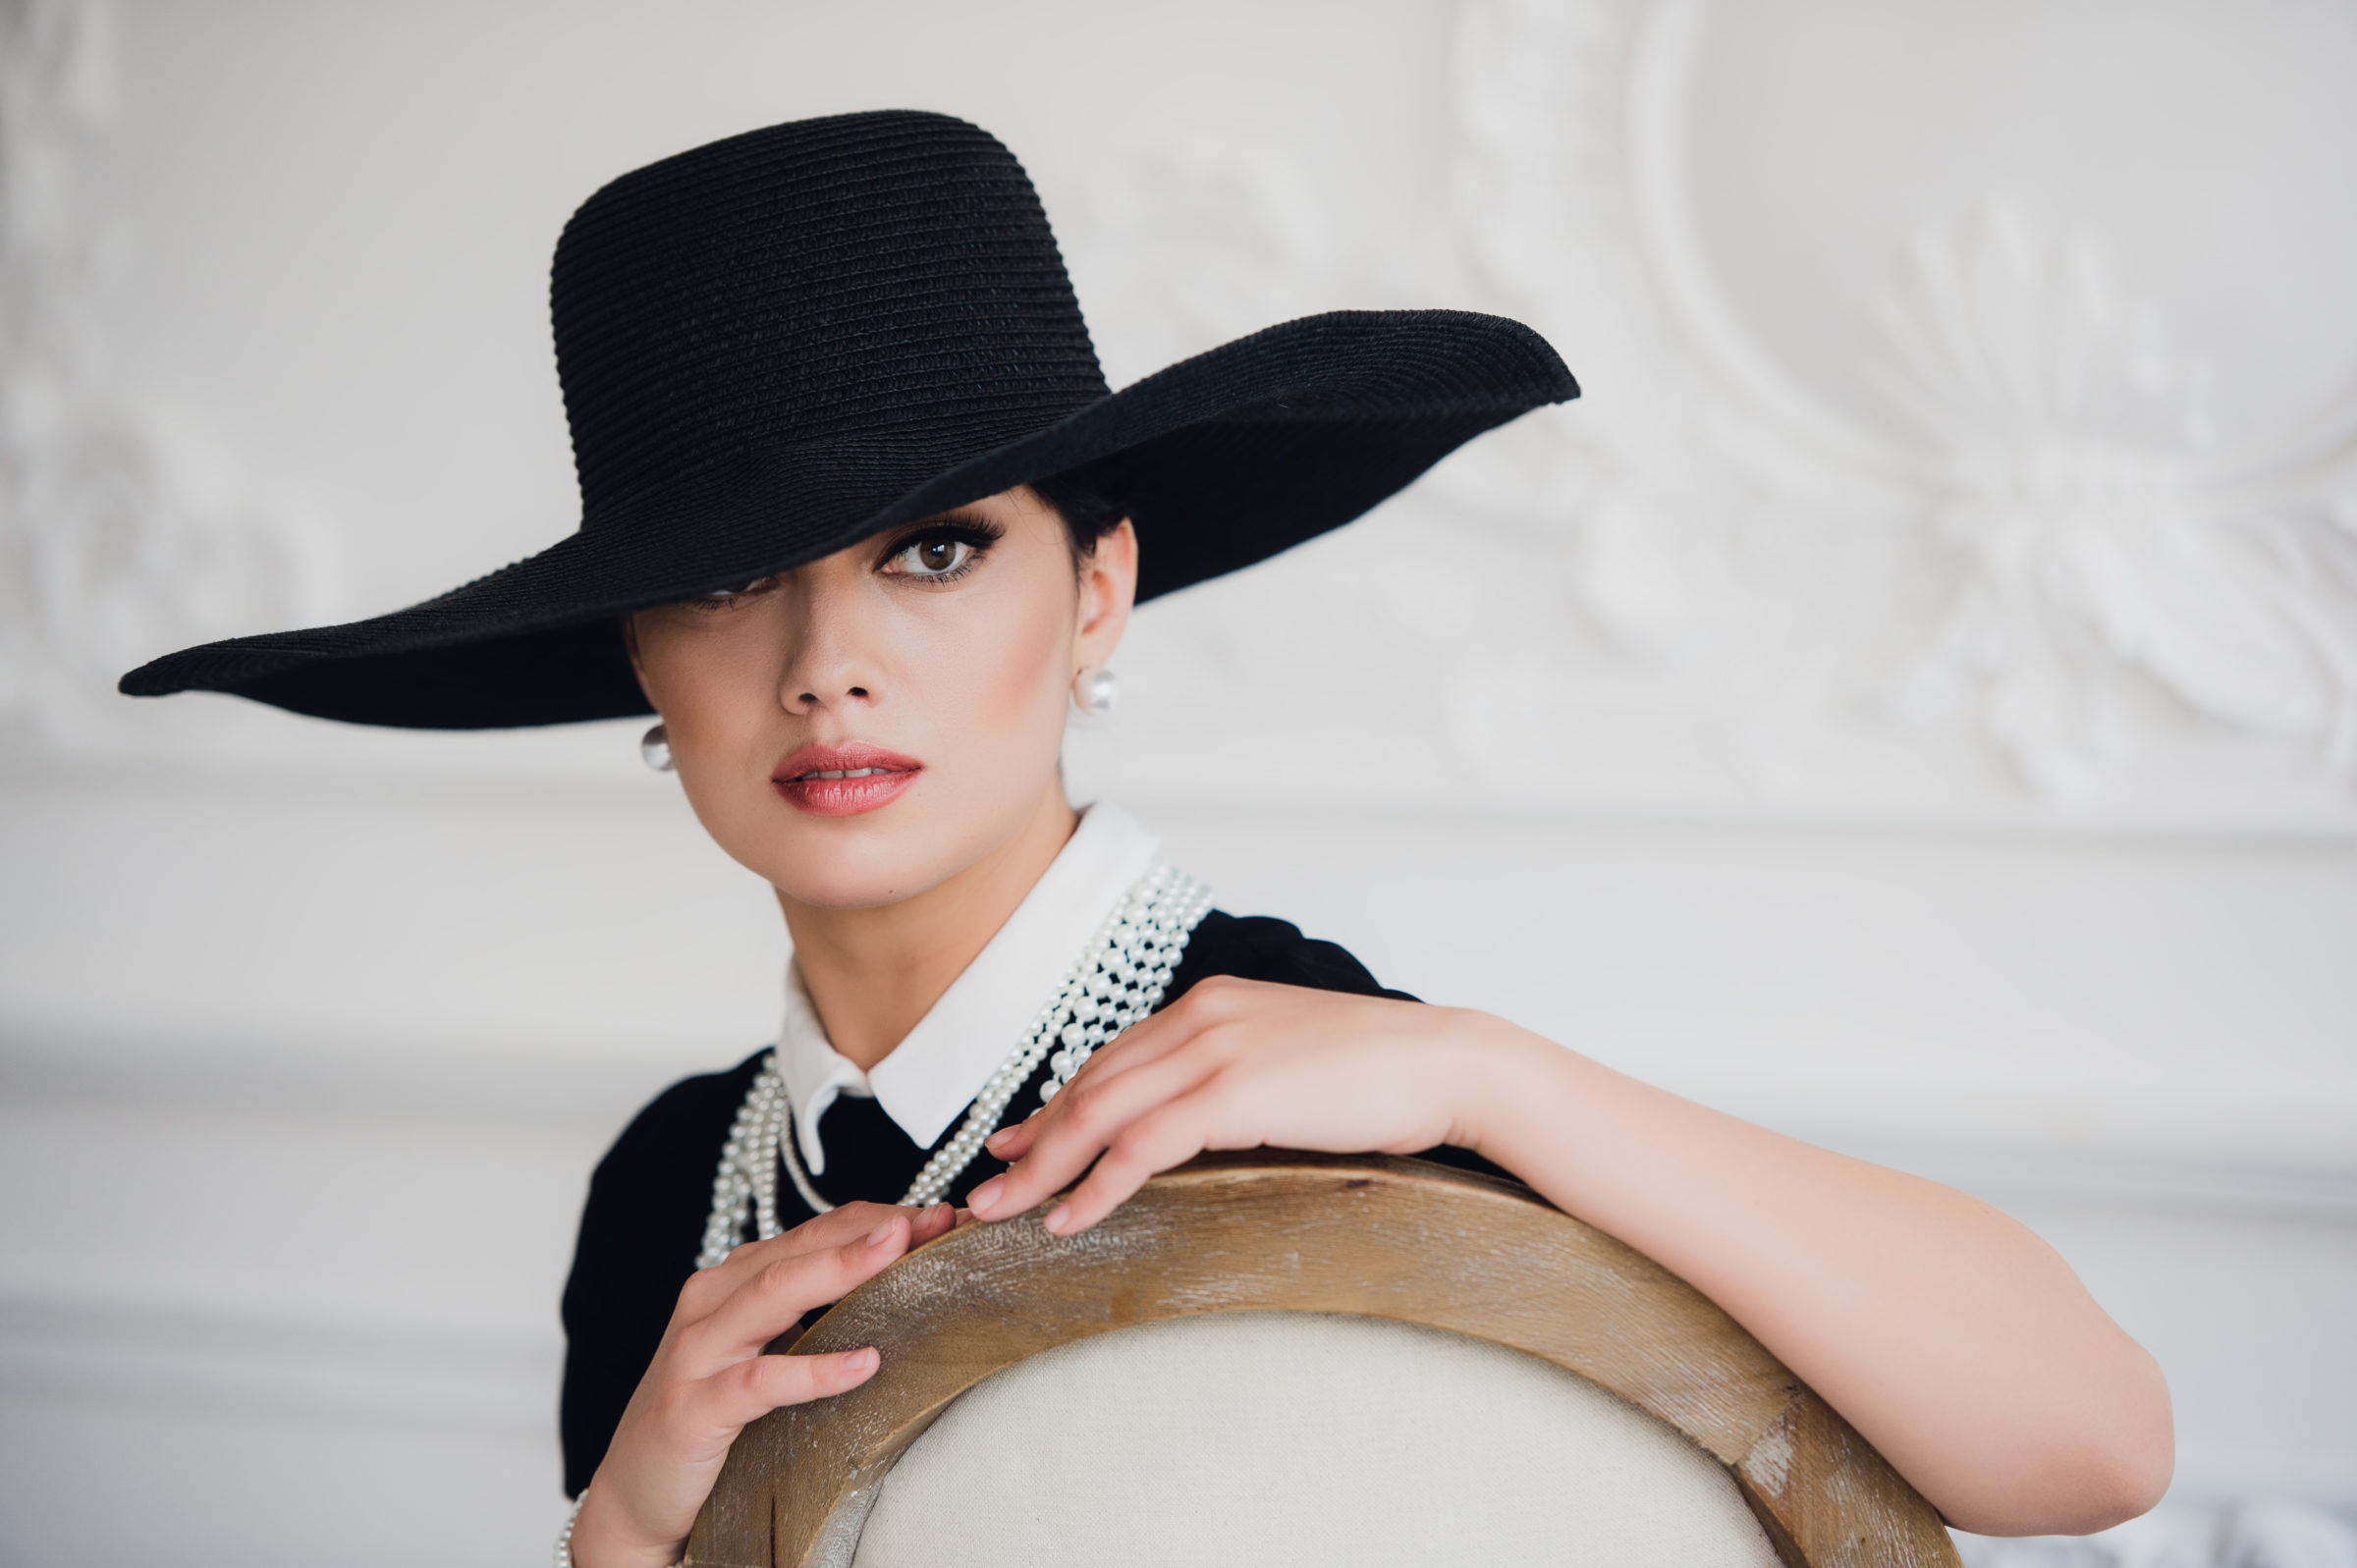 elegant woman in black dress with a hat sitting on PKSNGRY